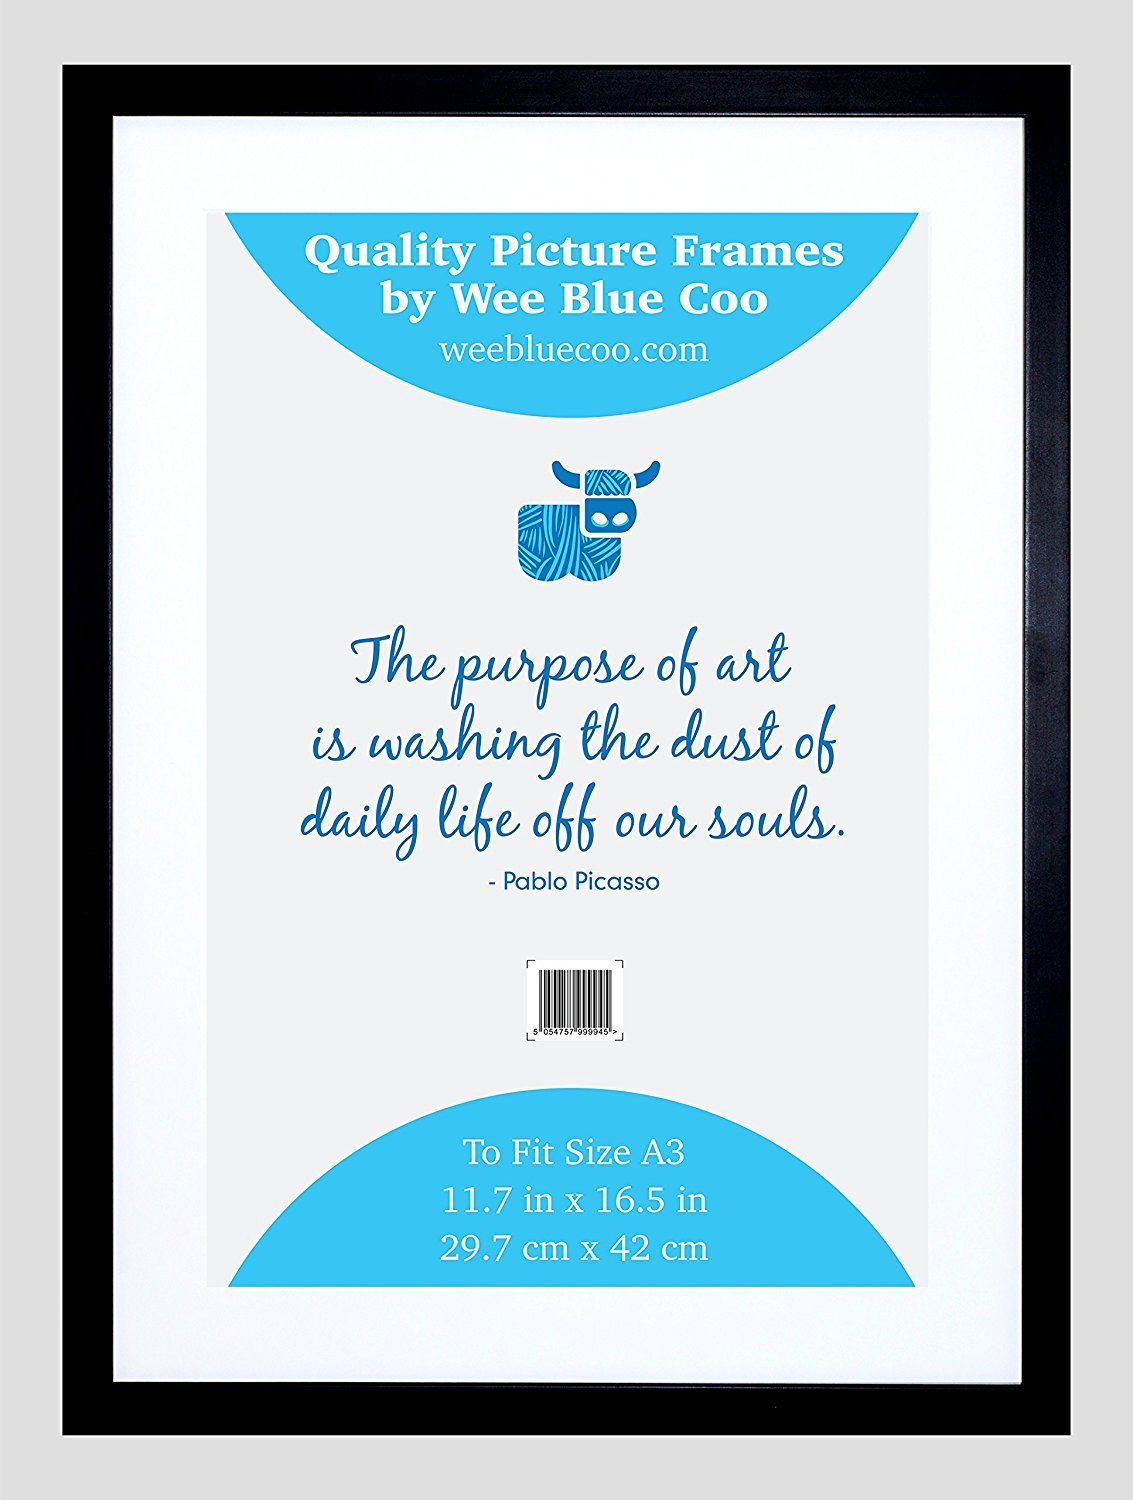 A3 Wooden Black Picture Frame 27.9 X 42 cms / 11.7 inch X 16.5 Inch Wall Wood Photo Frame Acrylic Safety 'Glass' By Wee Blue Coo FRA019